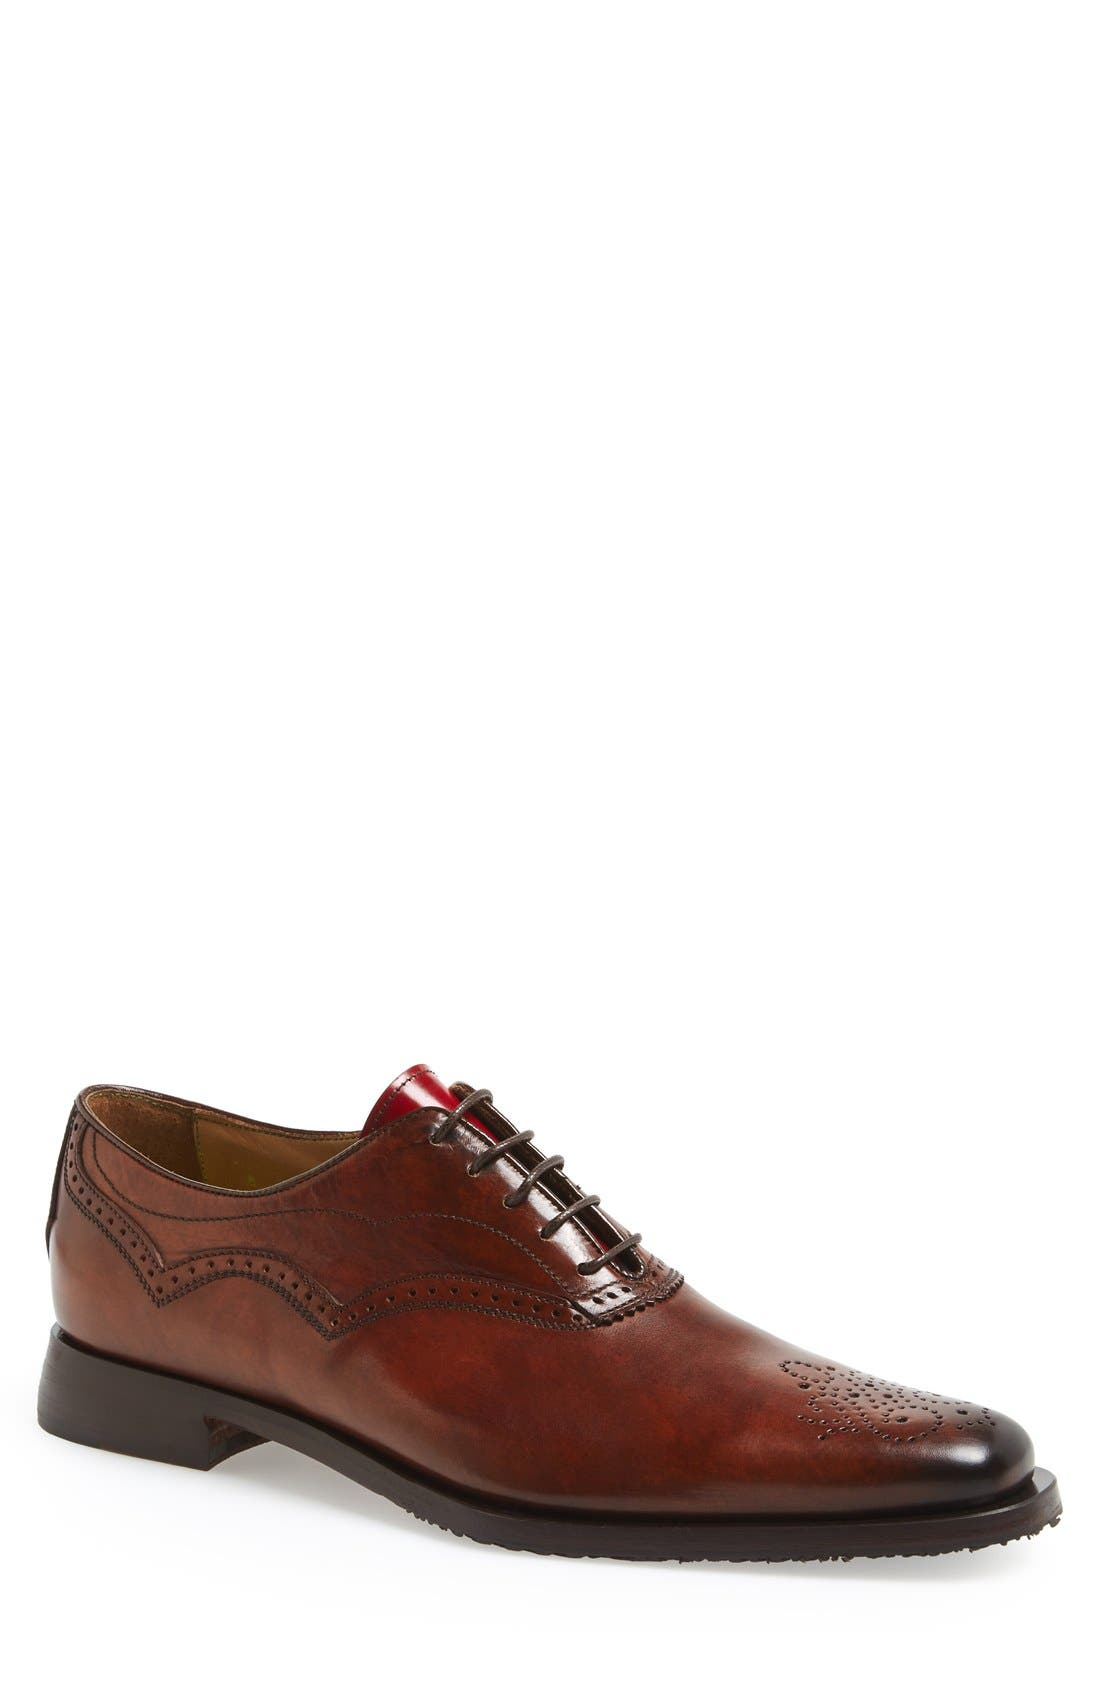 Alternate Image 1 Selected - OLIVER SWEENEY PICOLIT CURVE BROGUE OXFORD